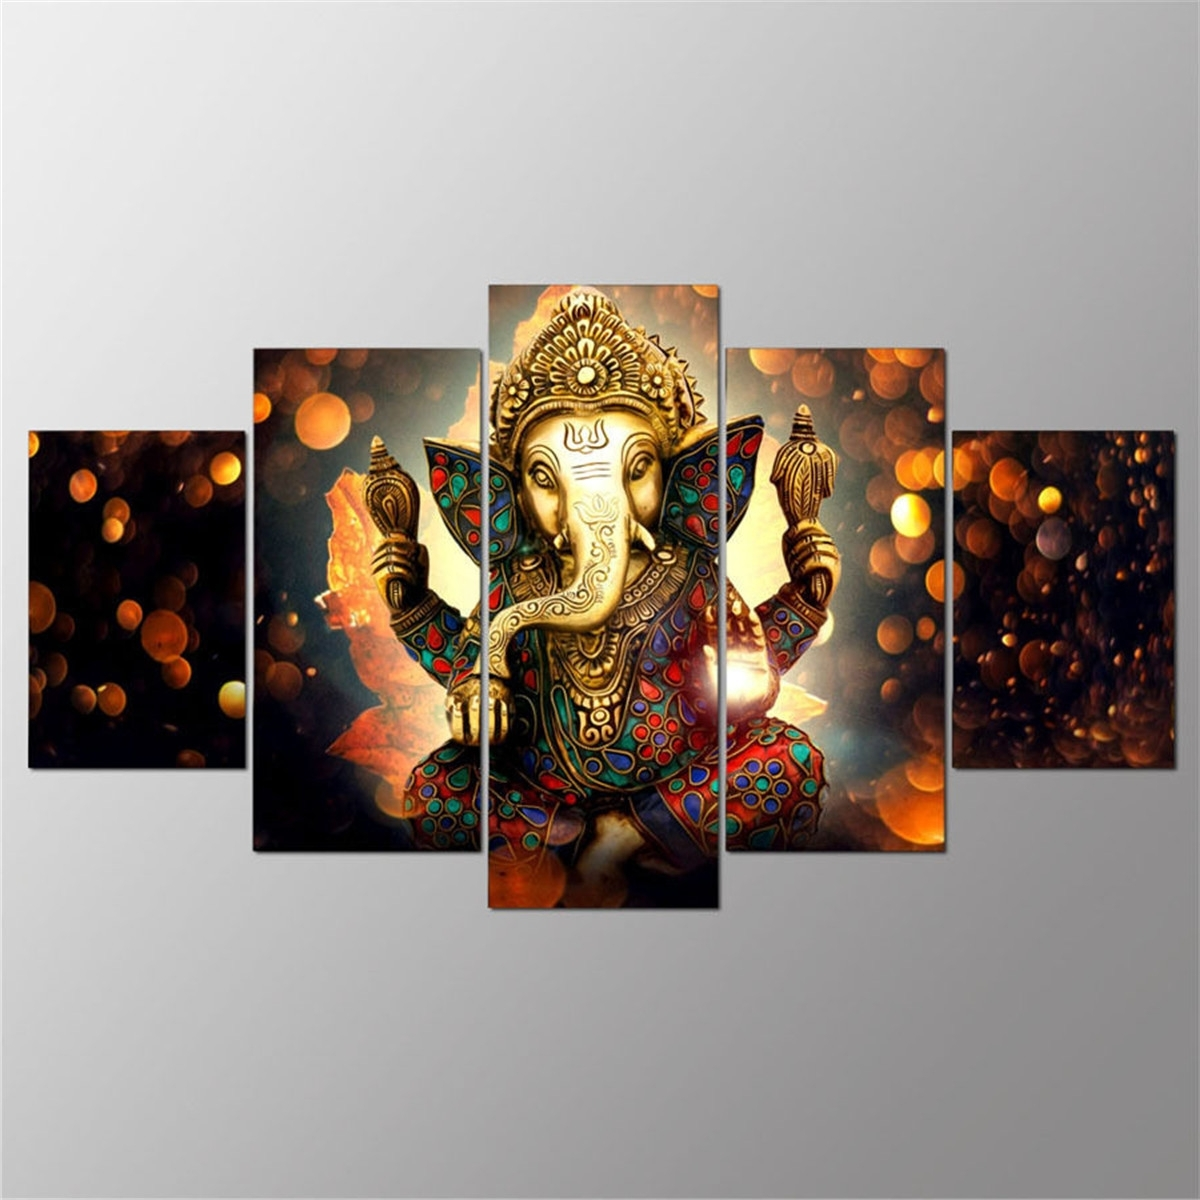 5Pcs Ganesha India Canvas Painting Print Modern Wall Art Poster Regarding Recent India Canvas Wall Art (Gallery 3 of 15)